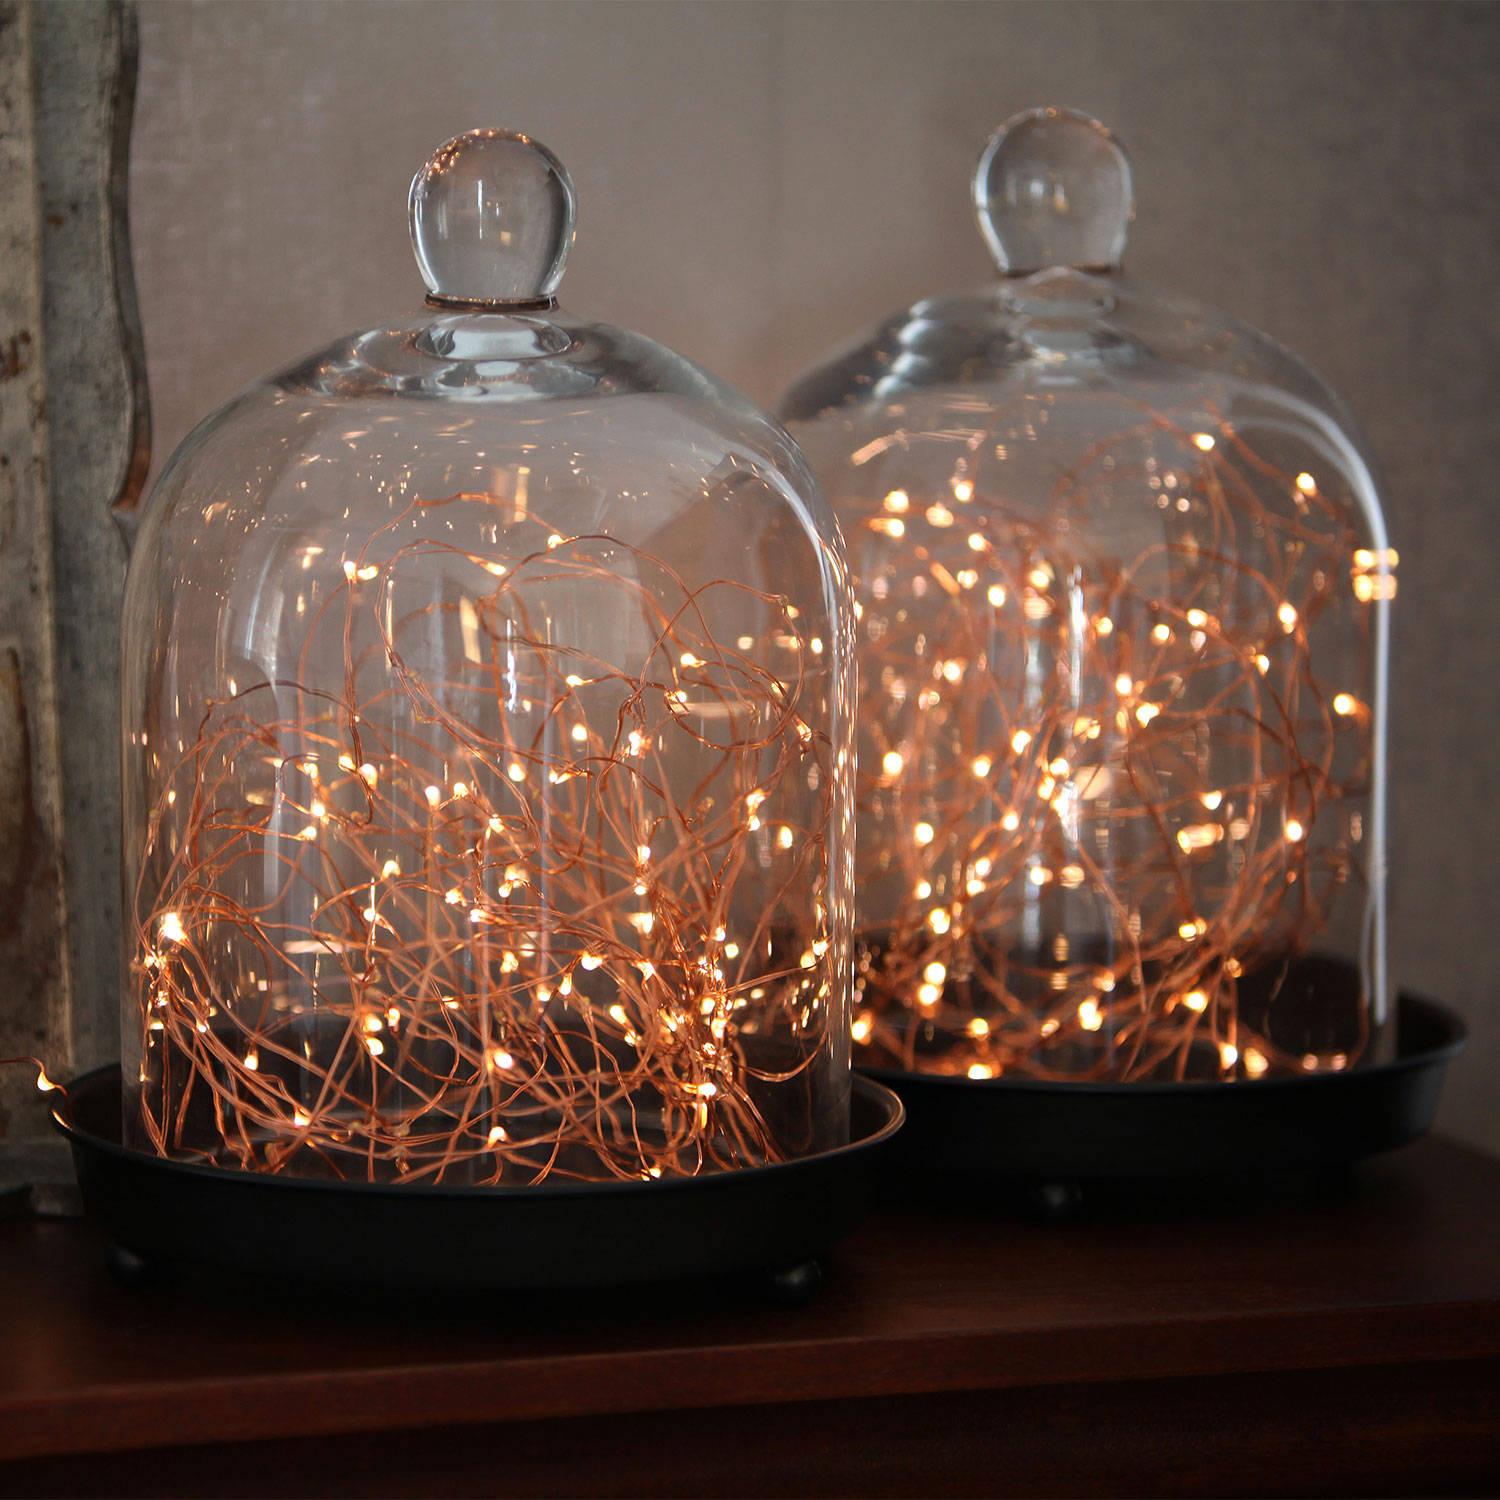 Lights.com String Lights Fairy Lights 300 Warm White Starry LED Copper Wire Plug-in String ...